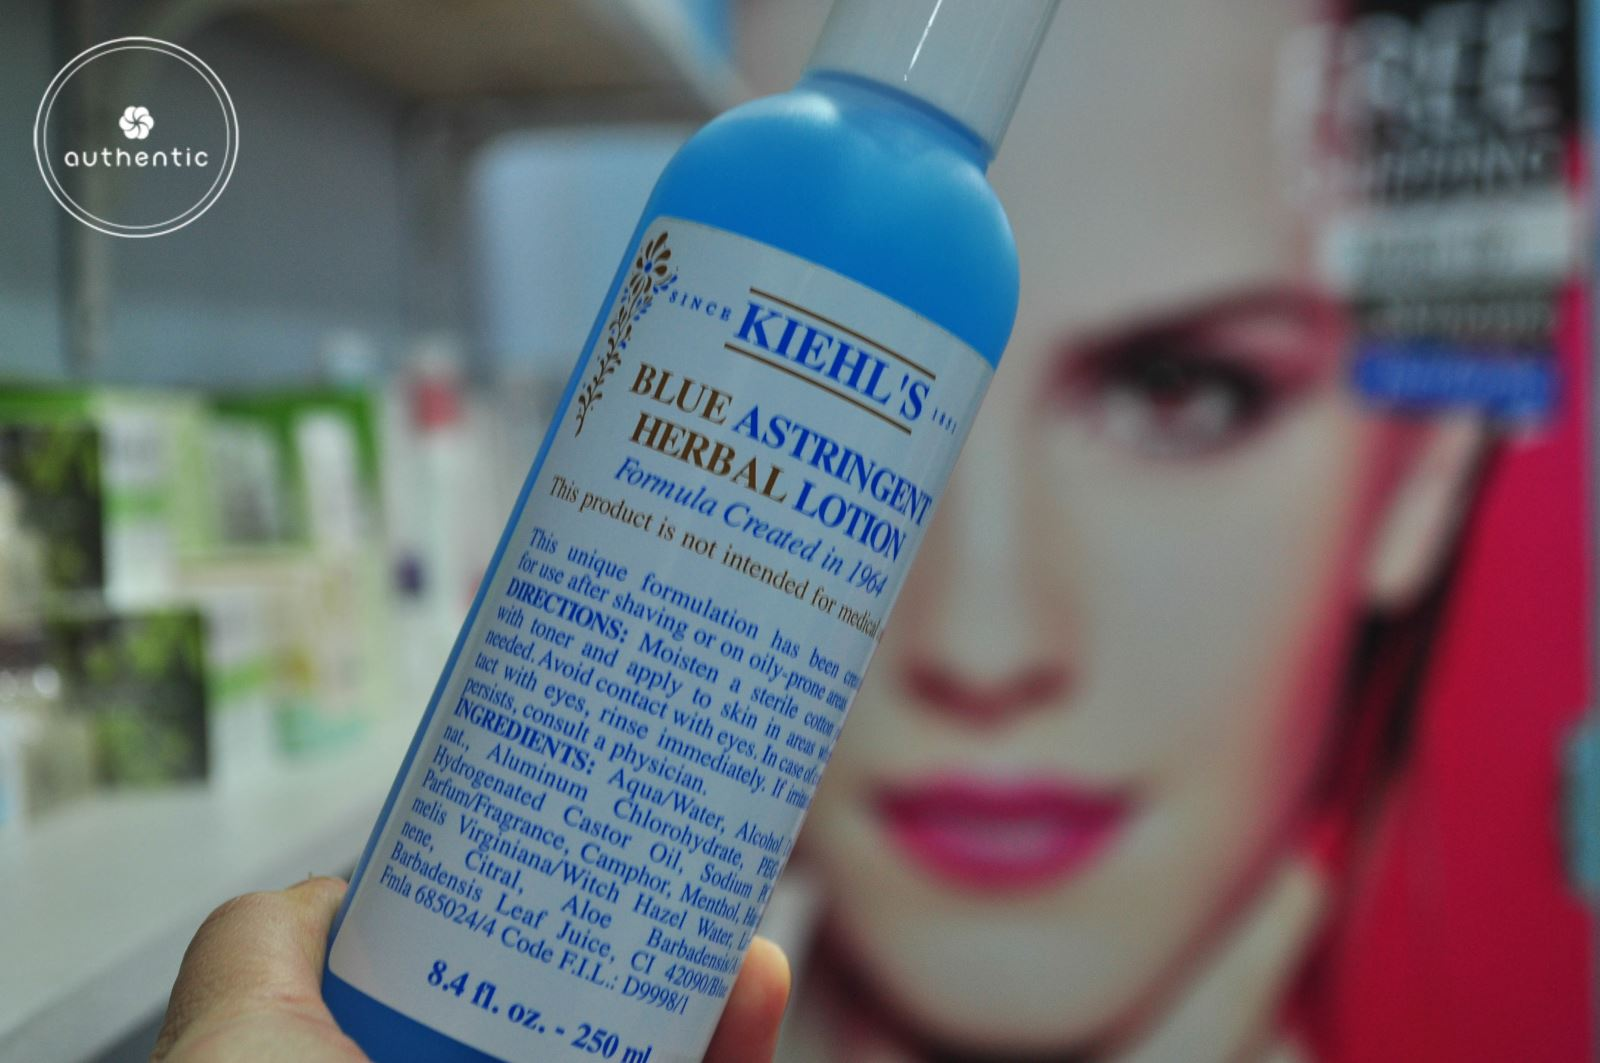 Toner Kiehl's Blue Astringent Herbal Lotion